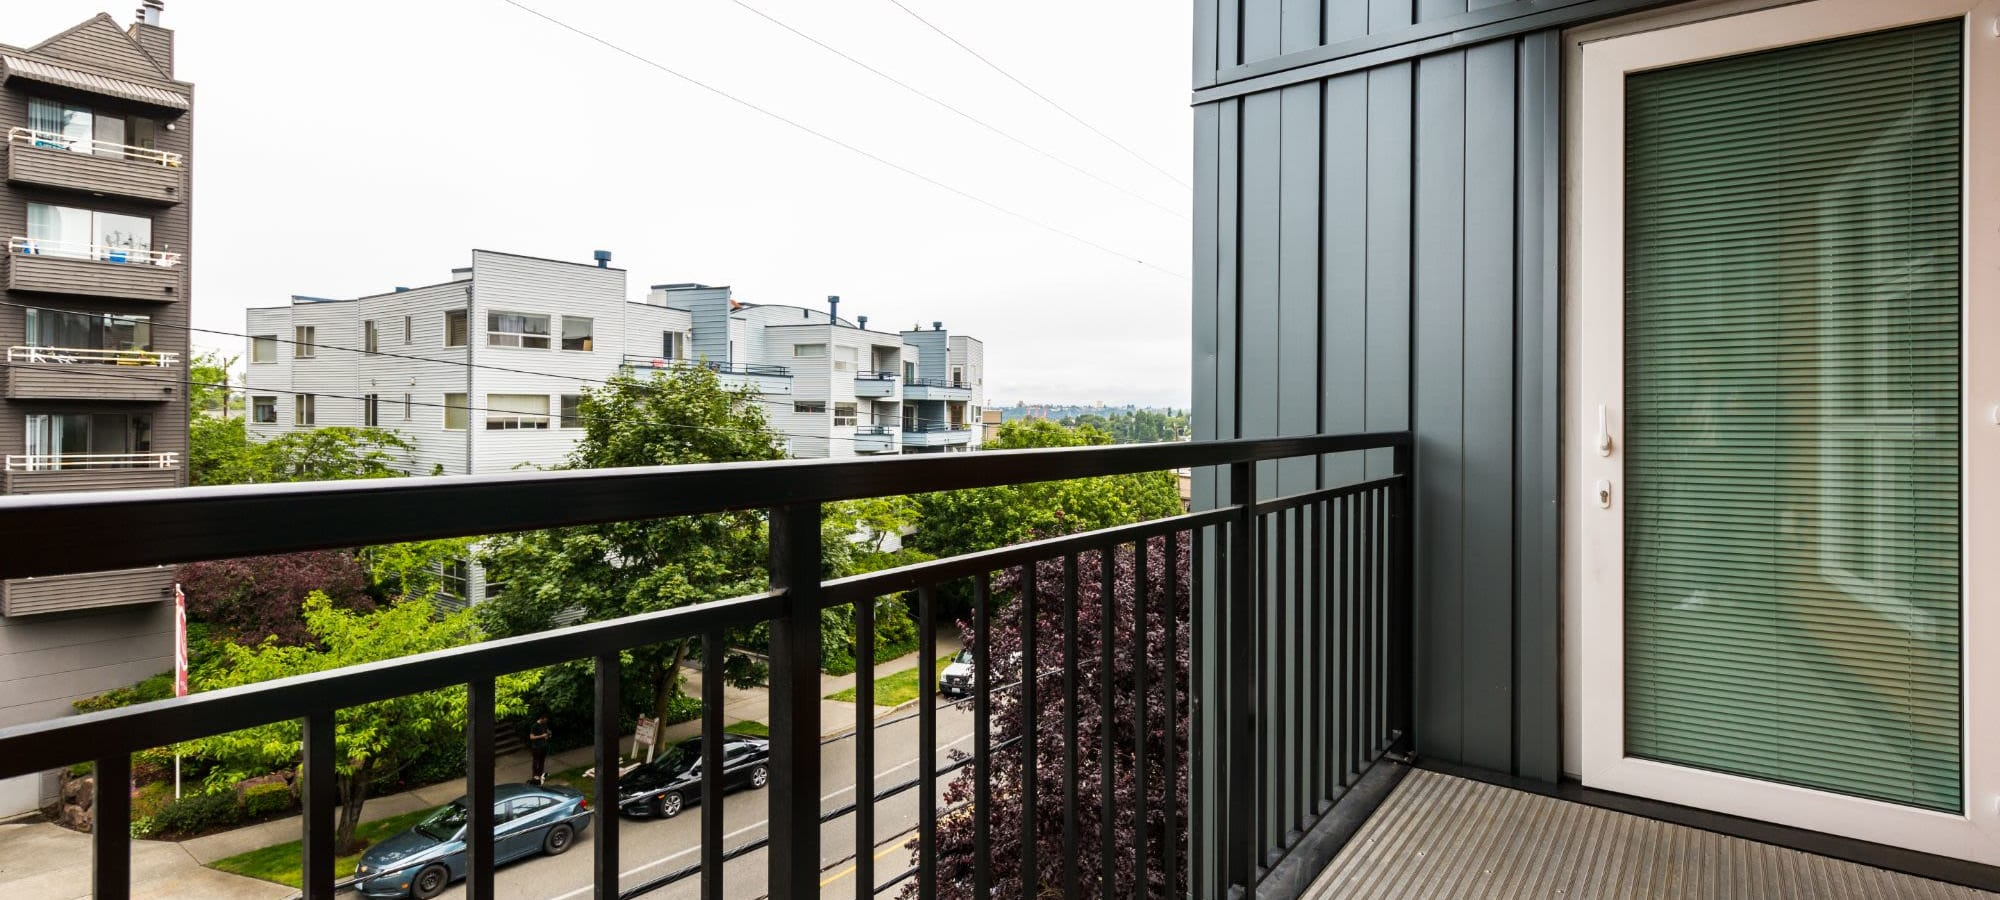 Schedule a tour of Marq West Seattle in Seattle, Washington